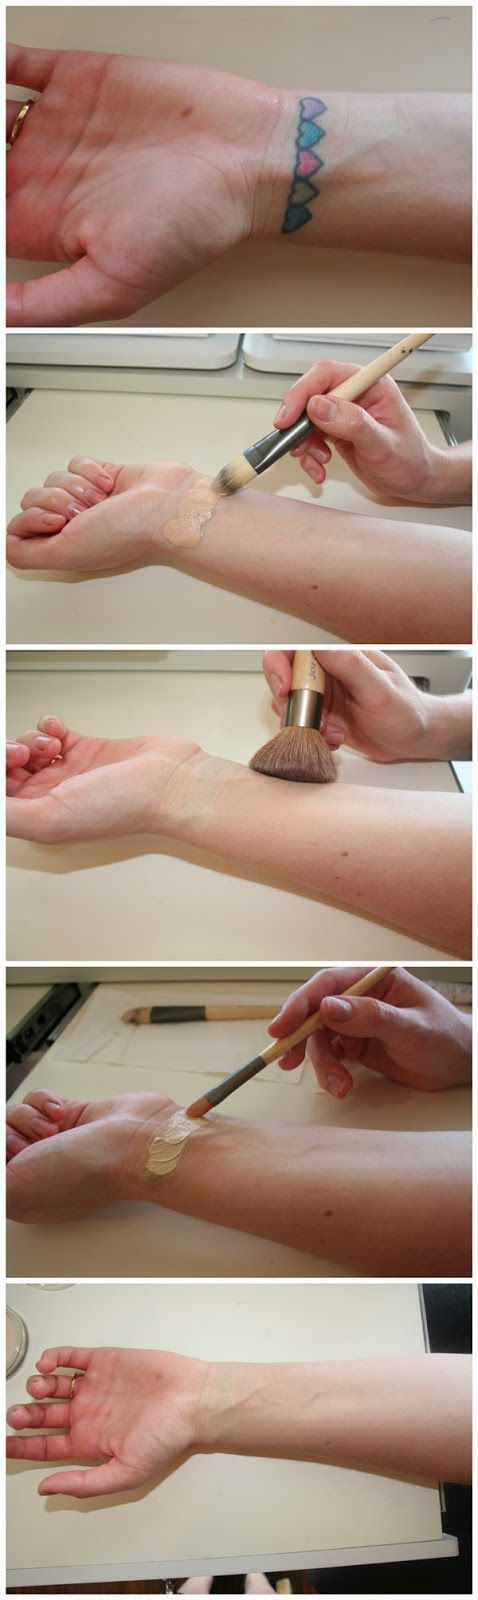 How to cover a tattoo with makeup. This will be so helpful with sign language interpreting. If it's small enough in the hand area you could also use a bandaid